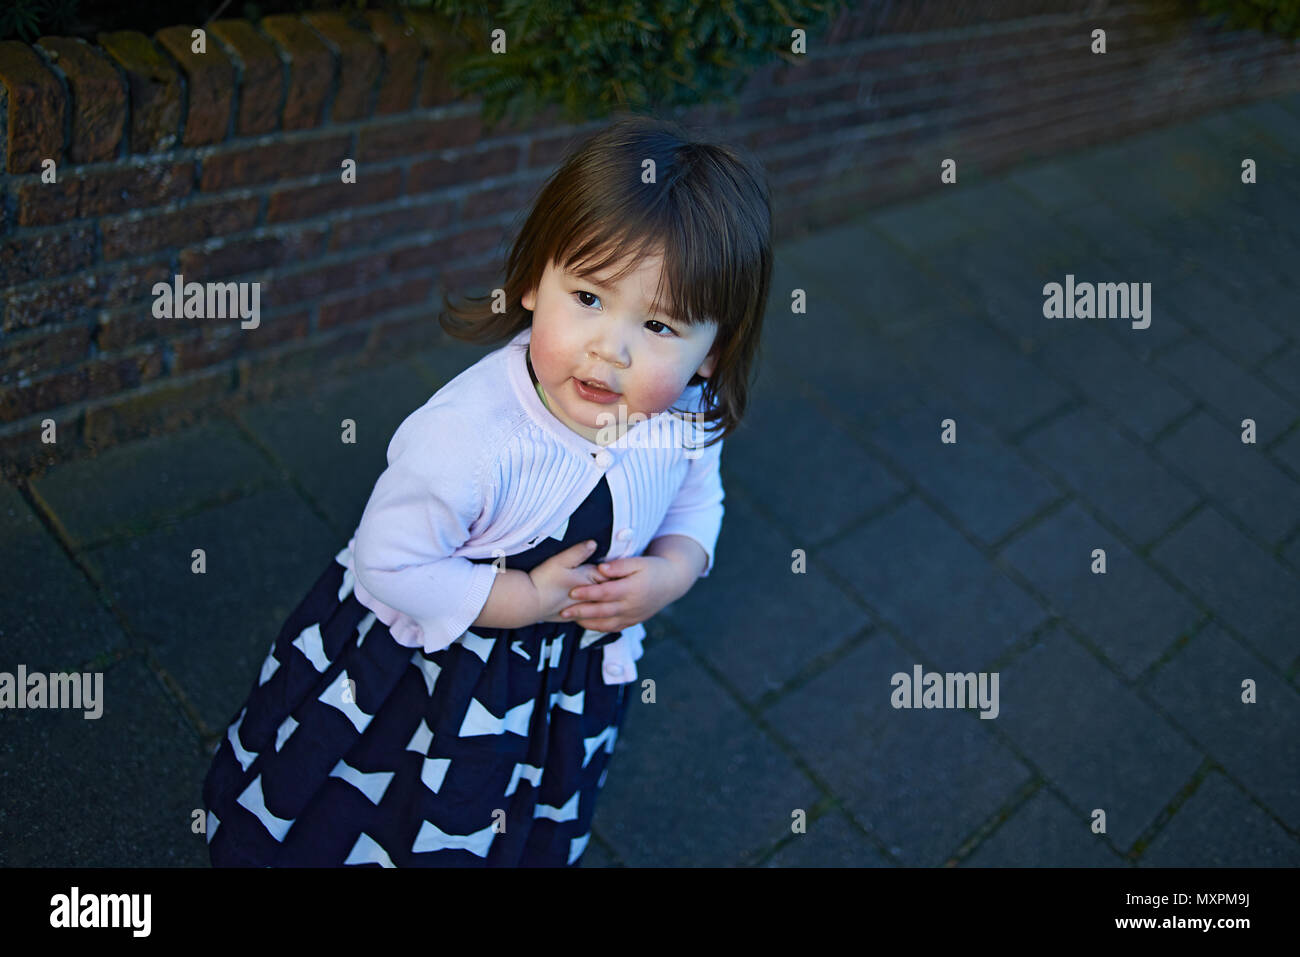 High angle shot of a cute Japanese baby girl standing alone on a paved path in the village Stock Photo